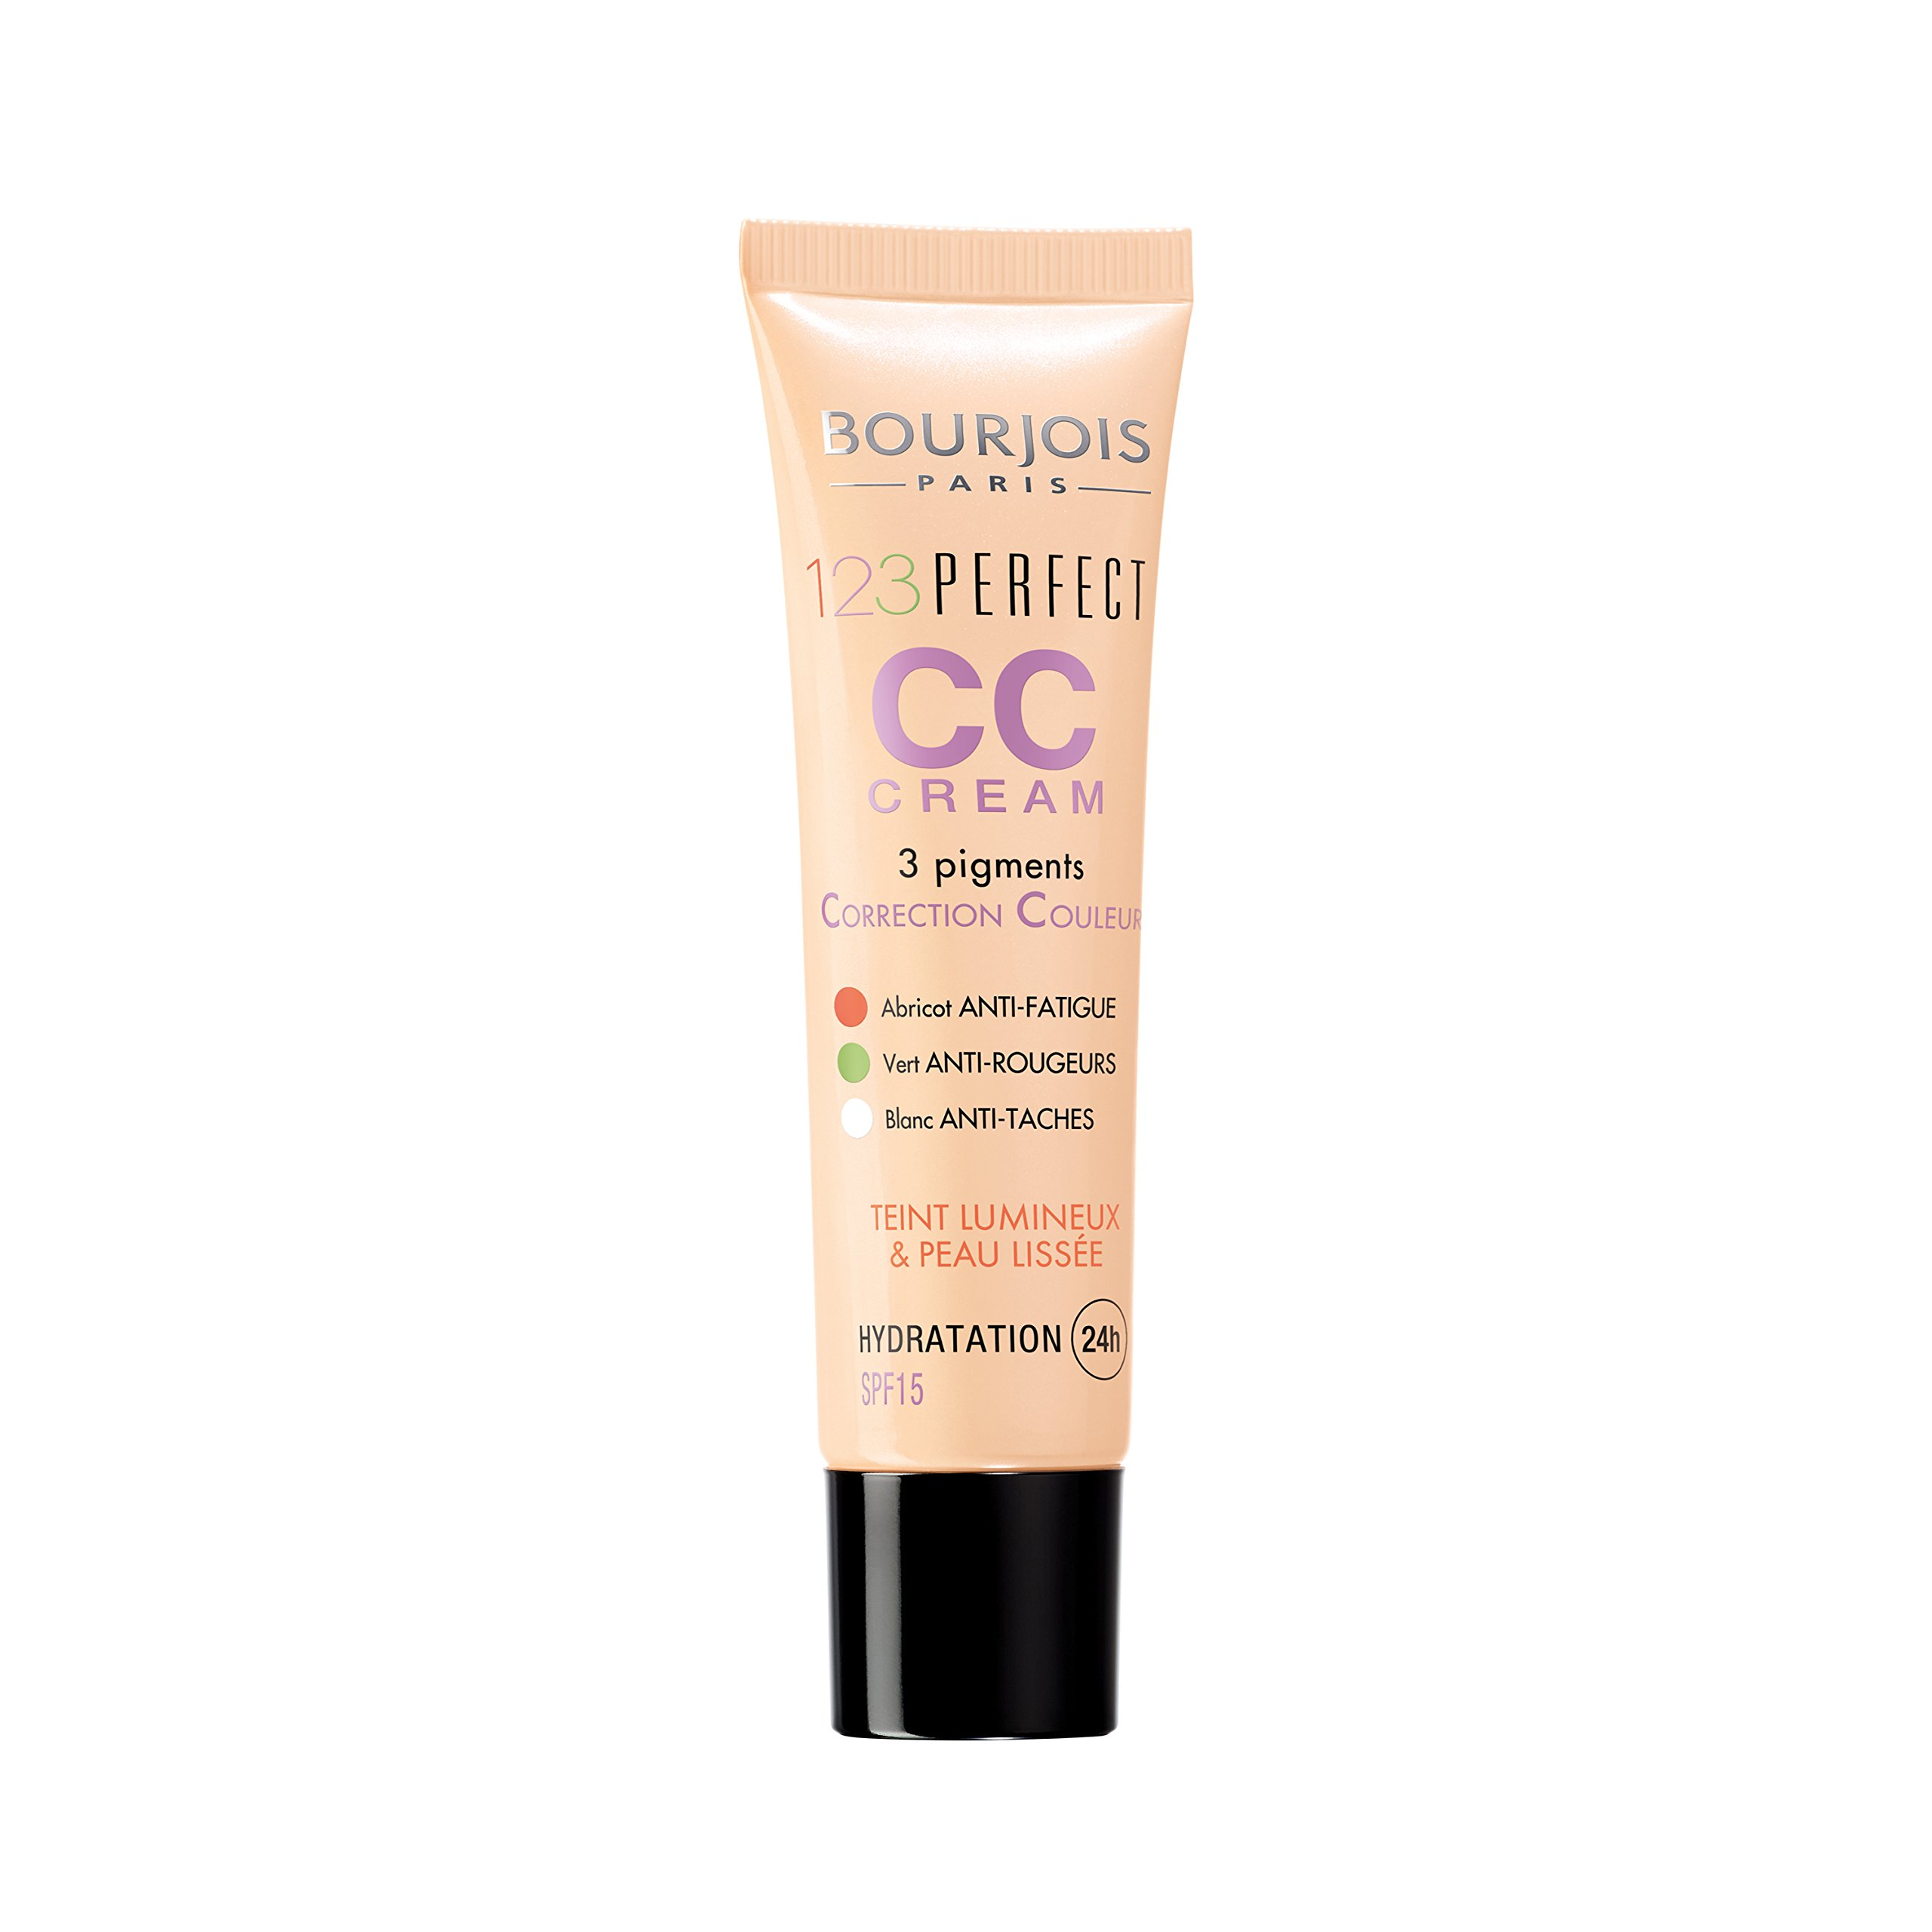 Bourjois - 123 Perfect CC Cream, crema correctora con color, tono light beige product